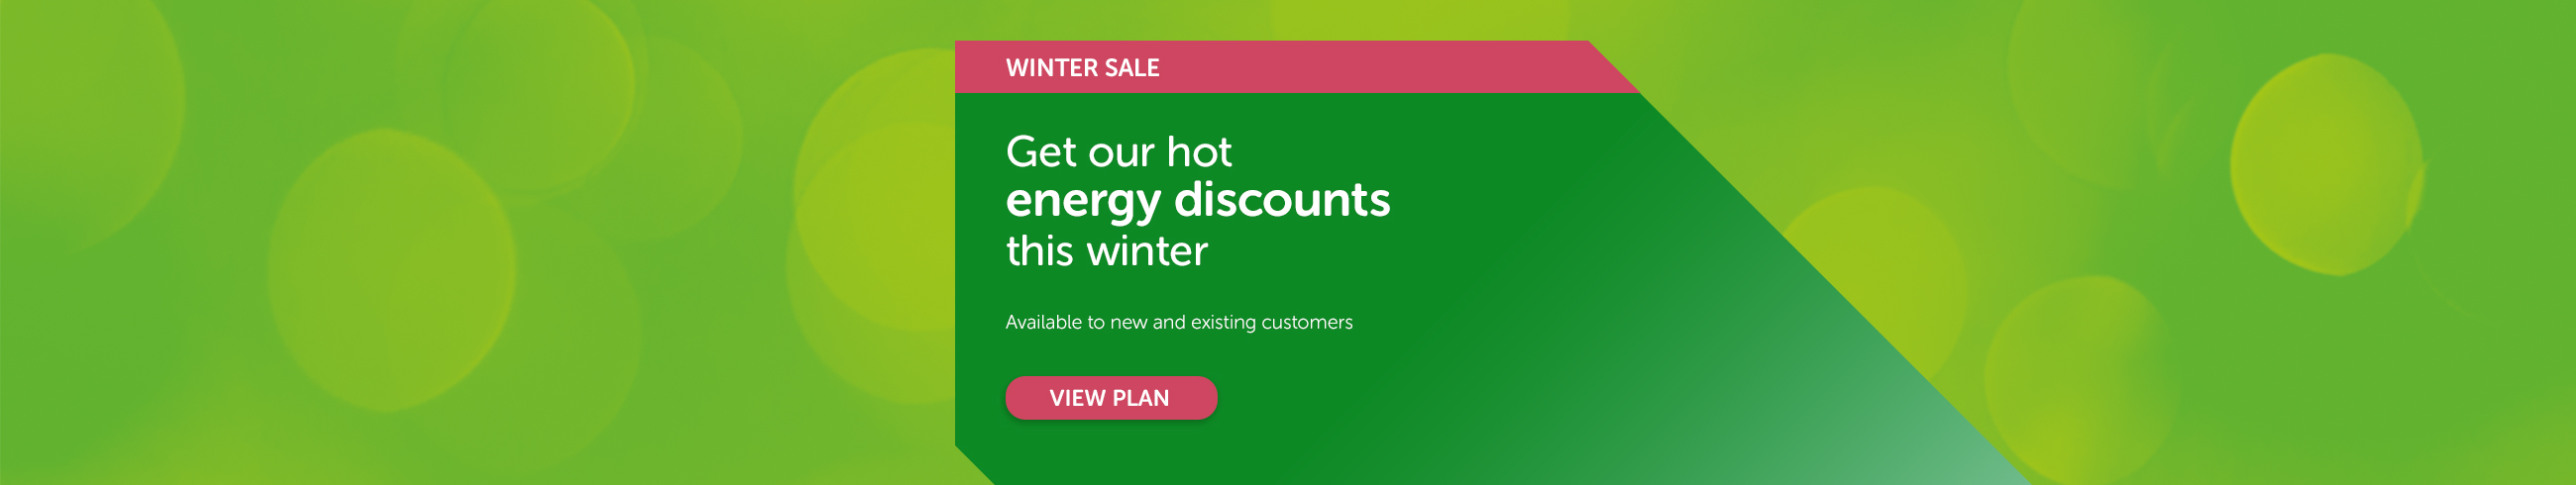 Get our hot energy discounts this winter. Available to new and existing customers.